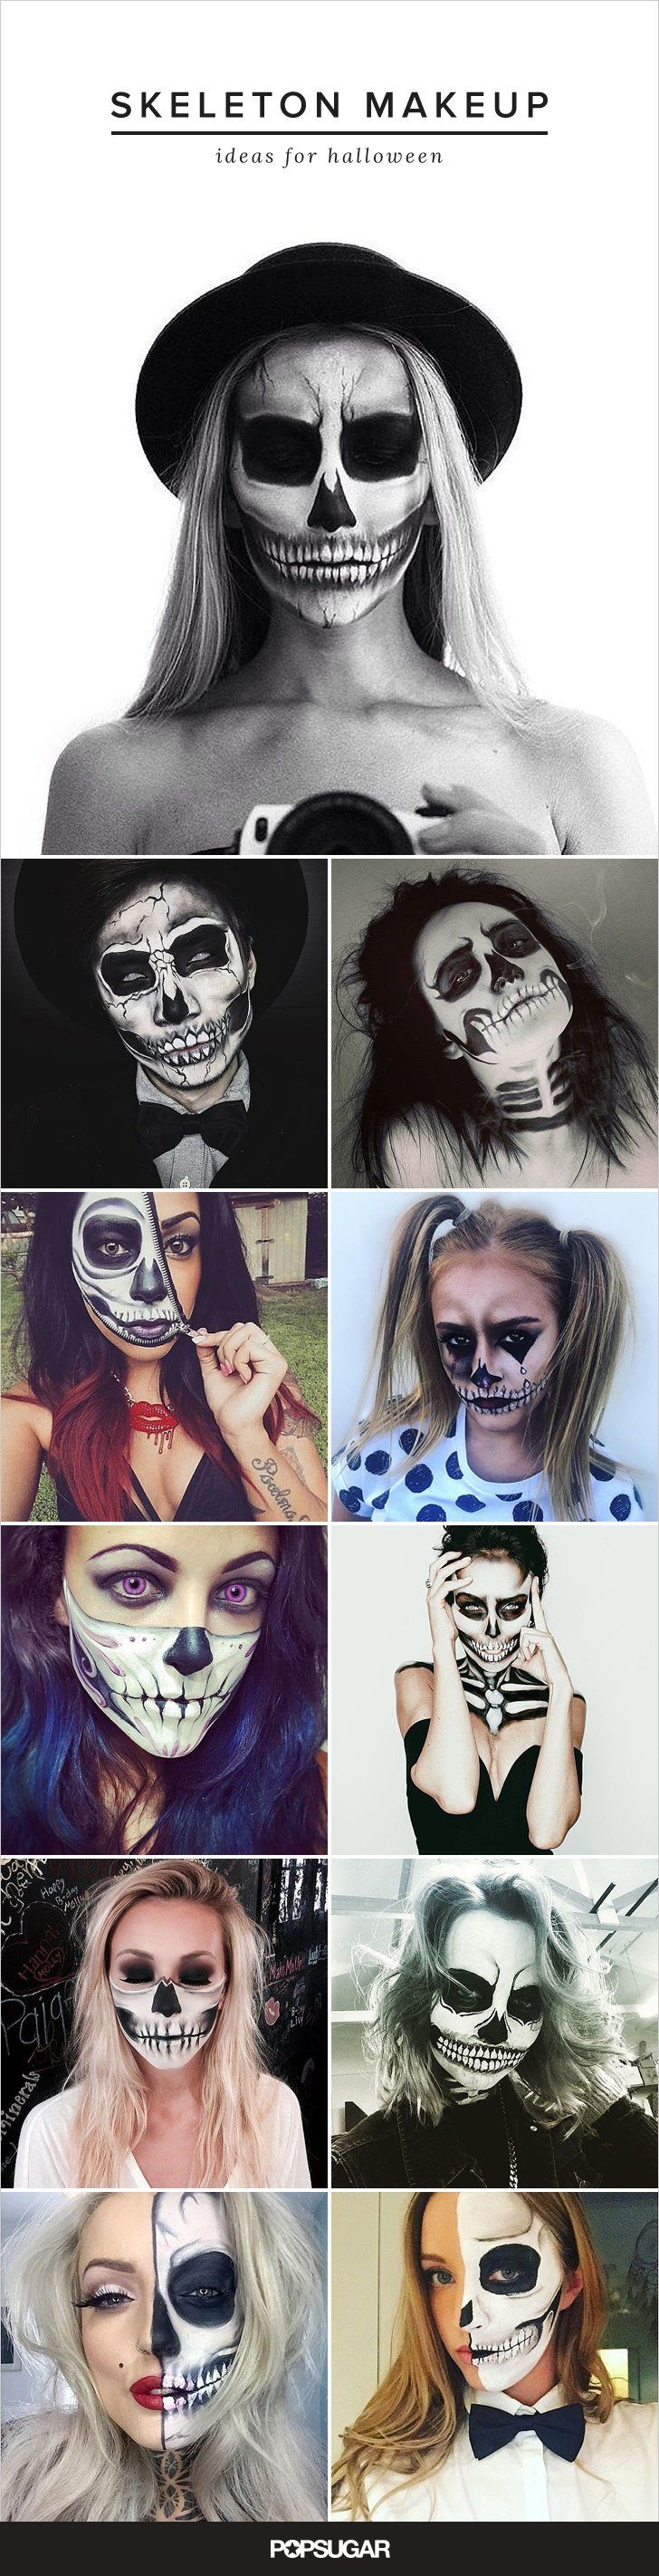 "One of our favorite Halloween looks pulls from an iconic ""scary"" image: the skull. Try one of these stunning skeleton faces."